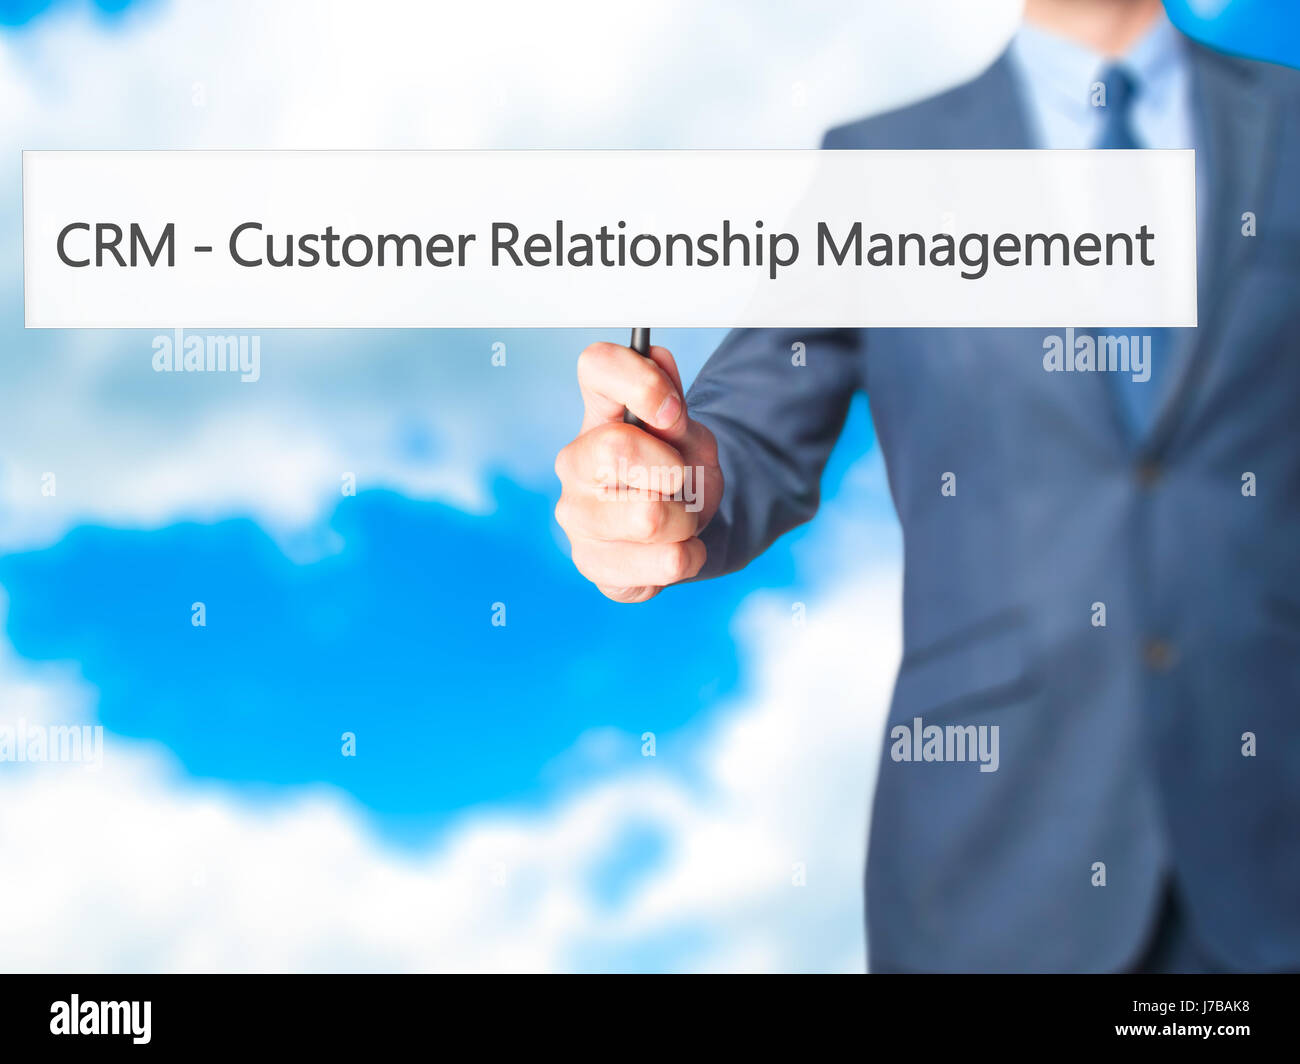 CRM Customer Relationship Management - Business man showing sign. Business, technology, internet concept. Stock - Stock Image